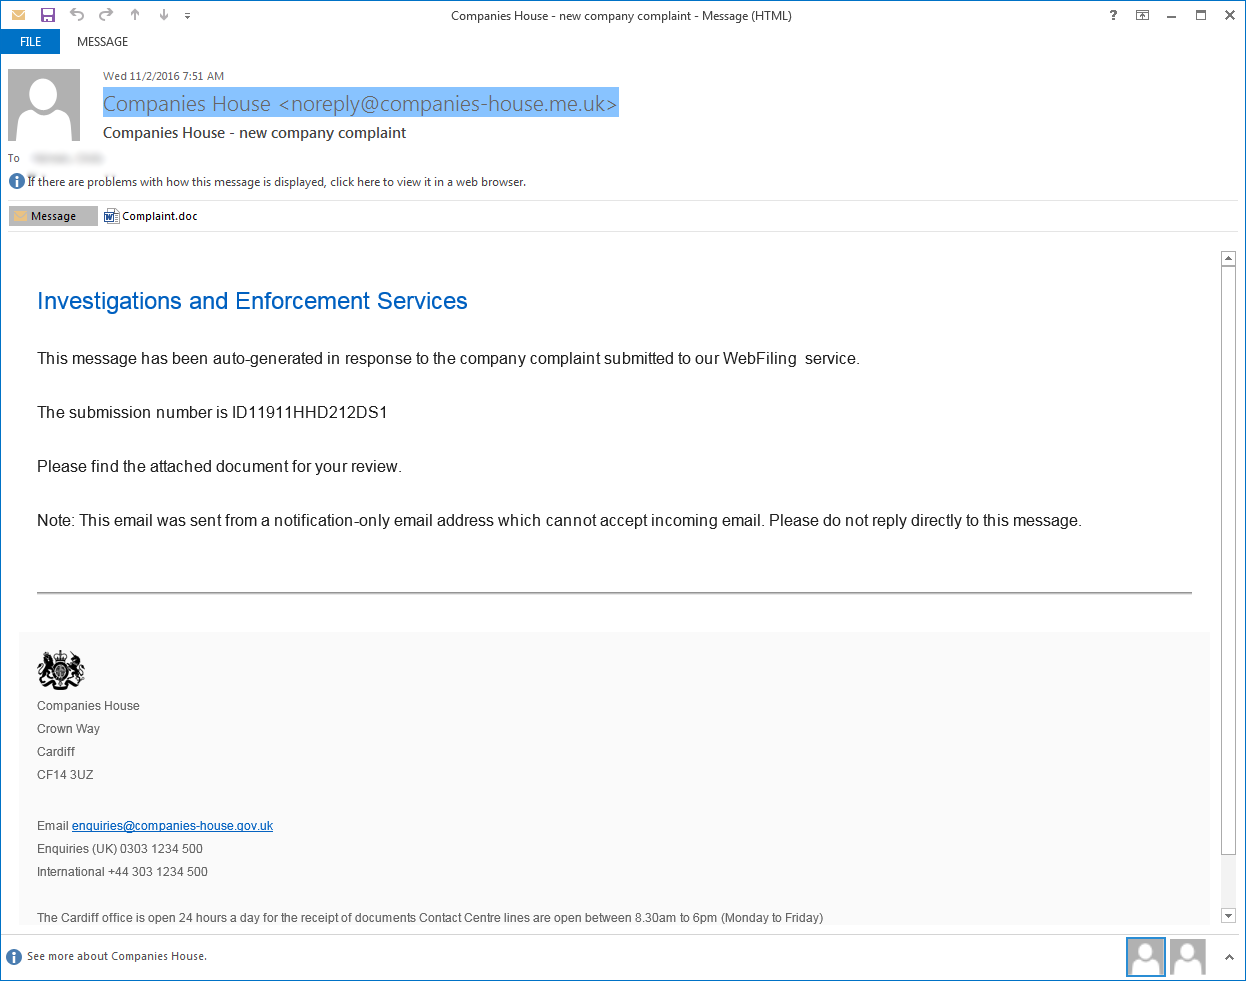 New TrickBot campaign Spamming Malicious Complaint doc